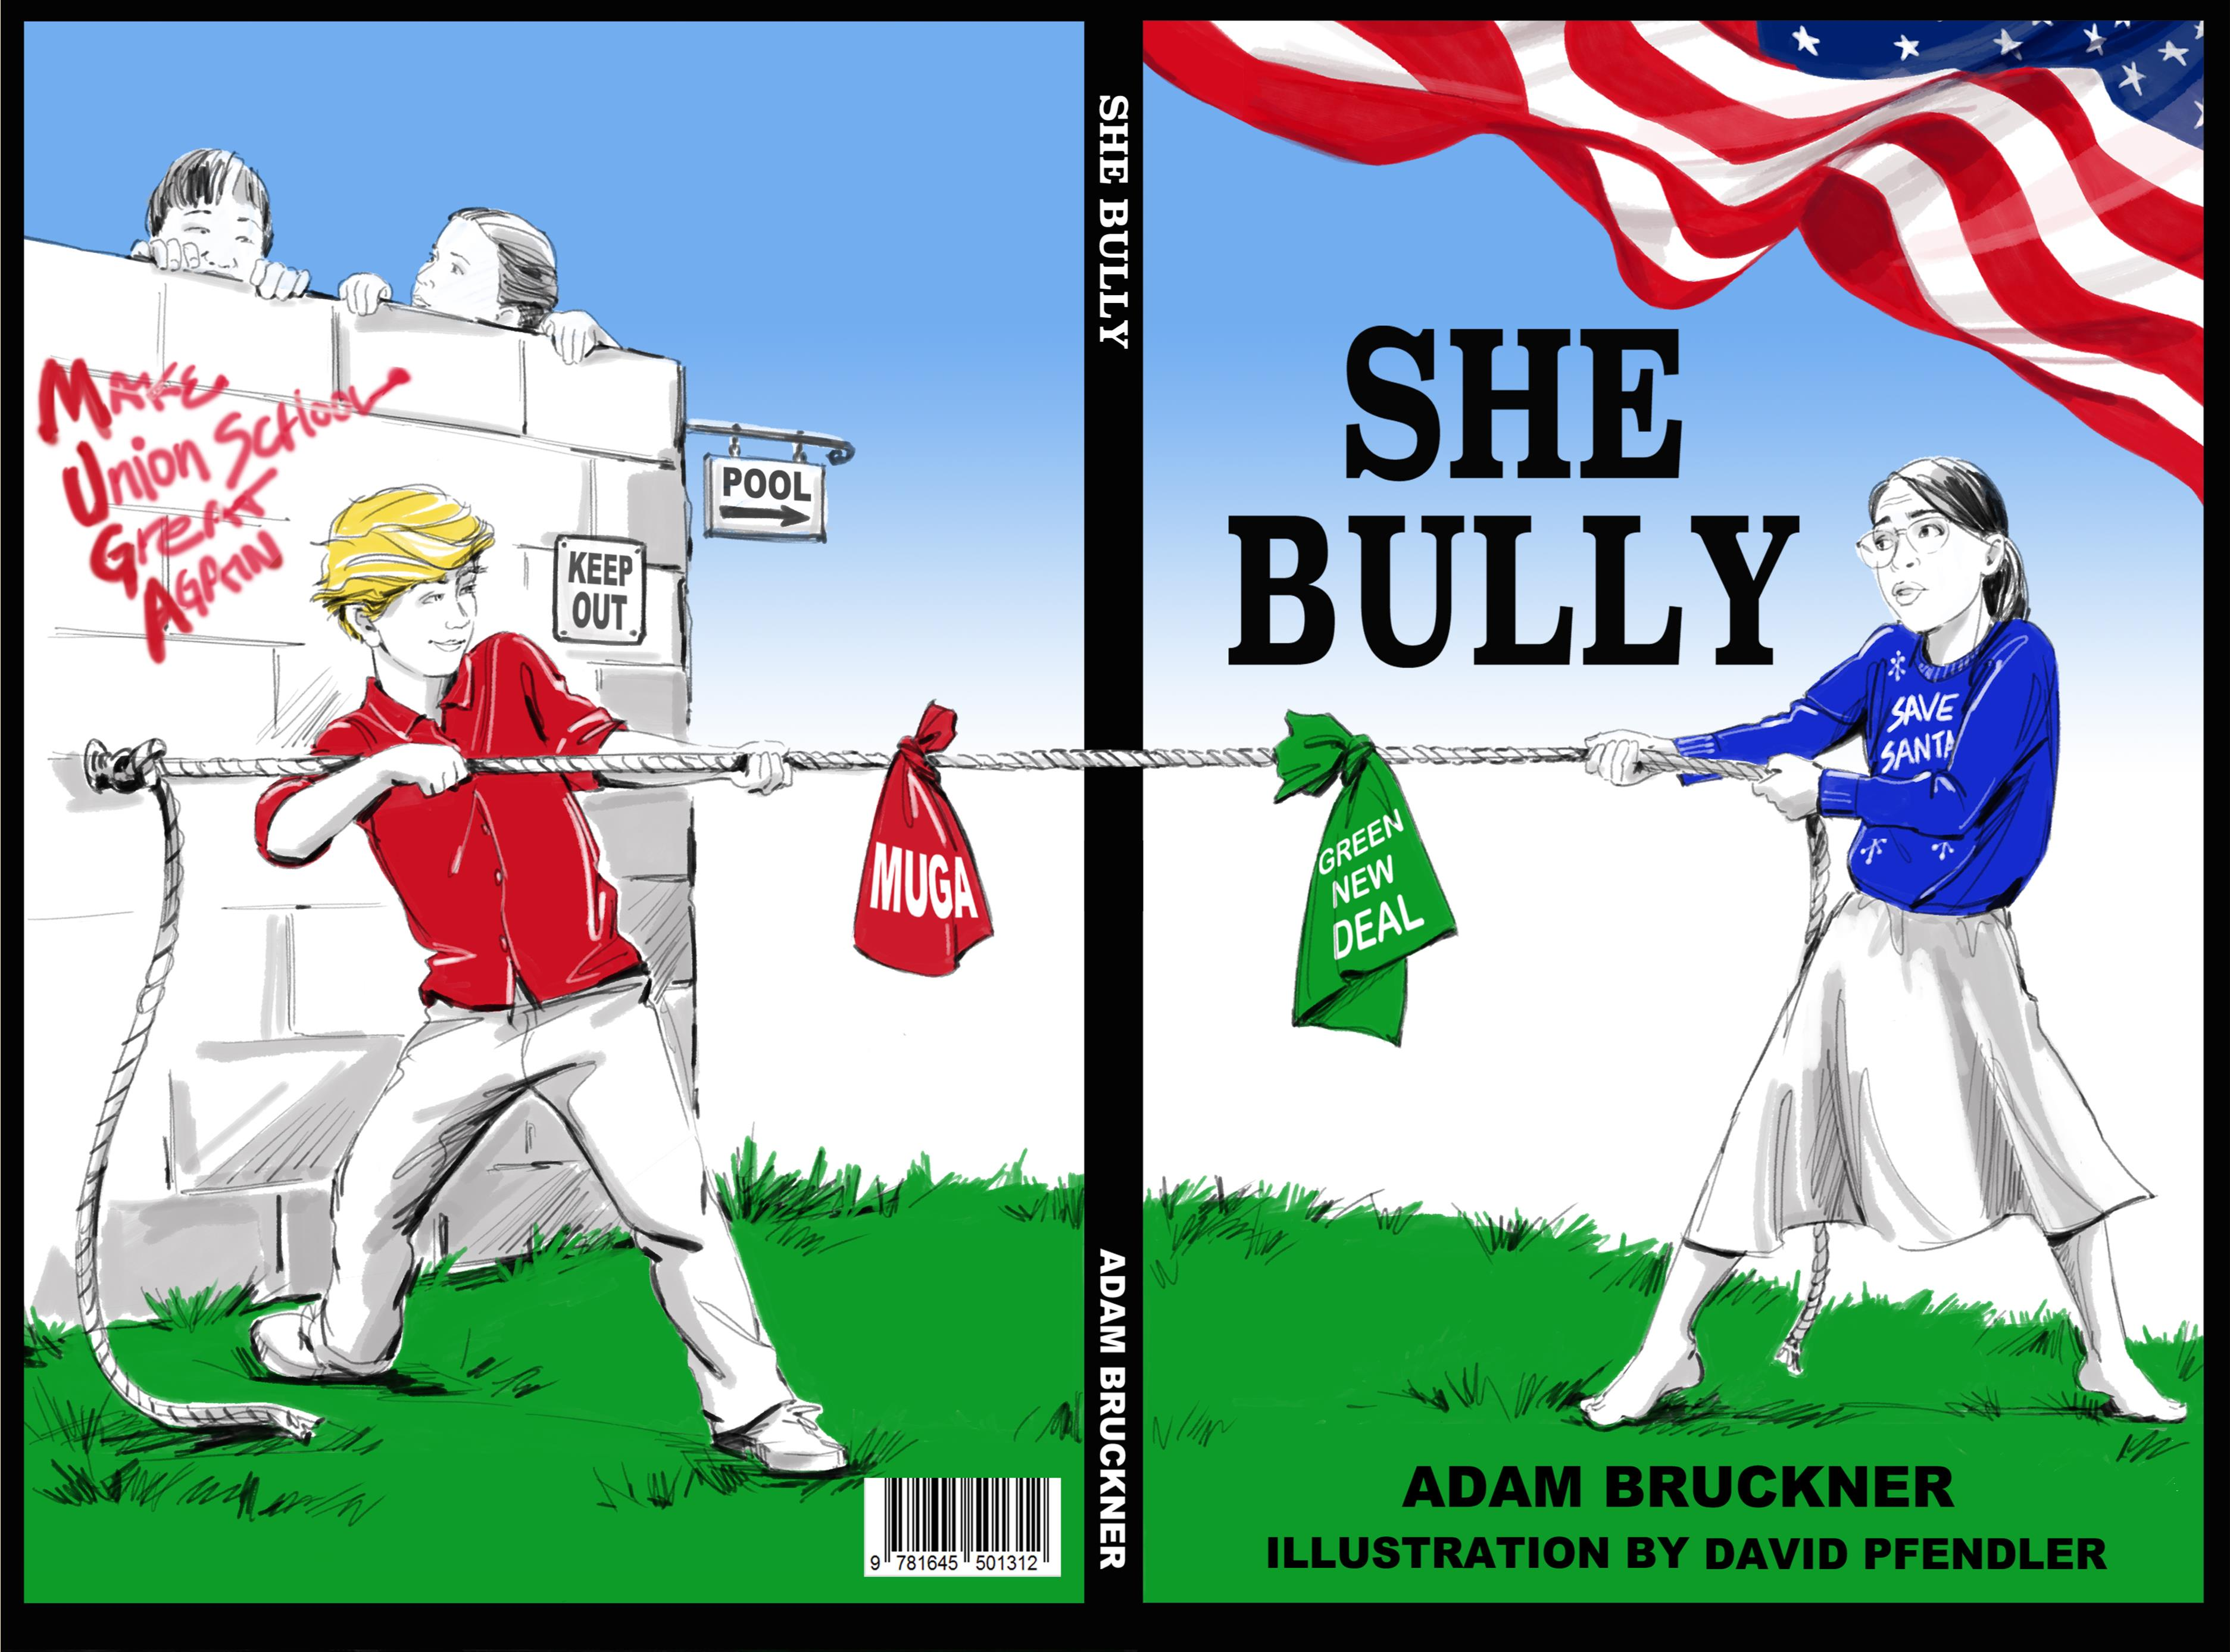 She Bully cover image